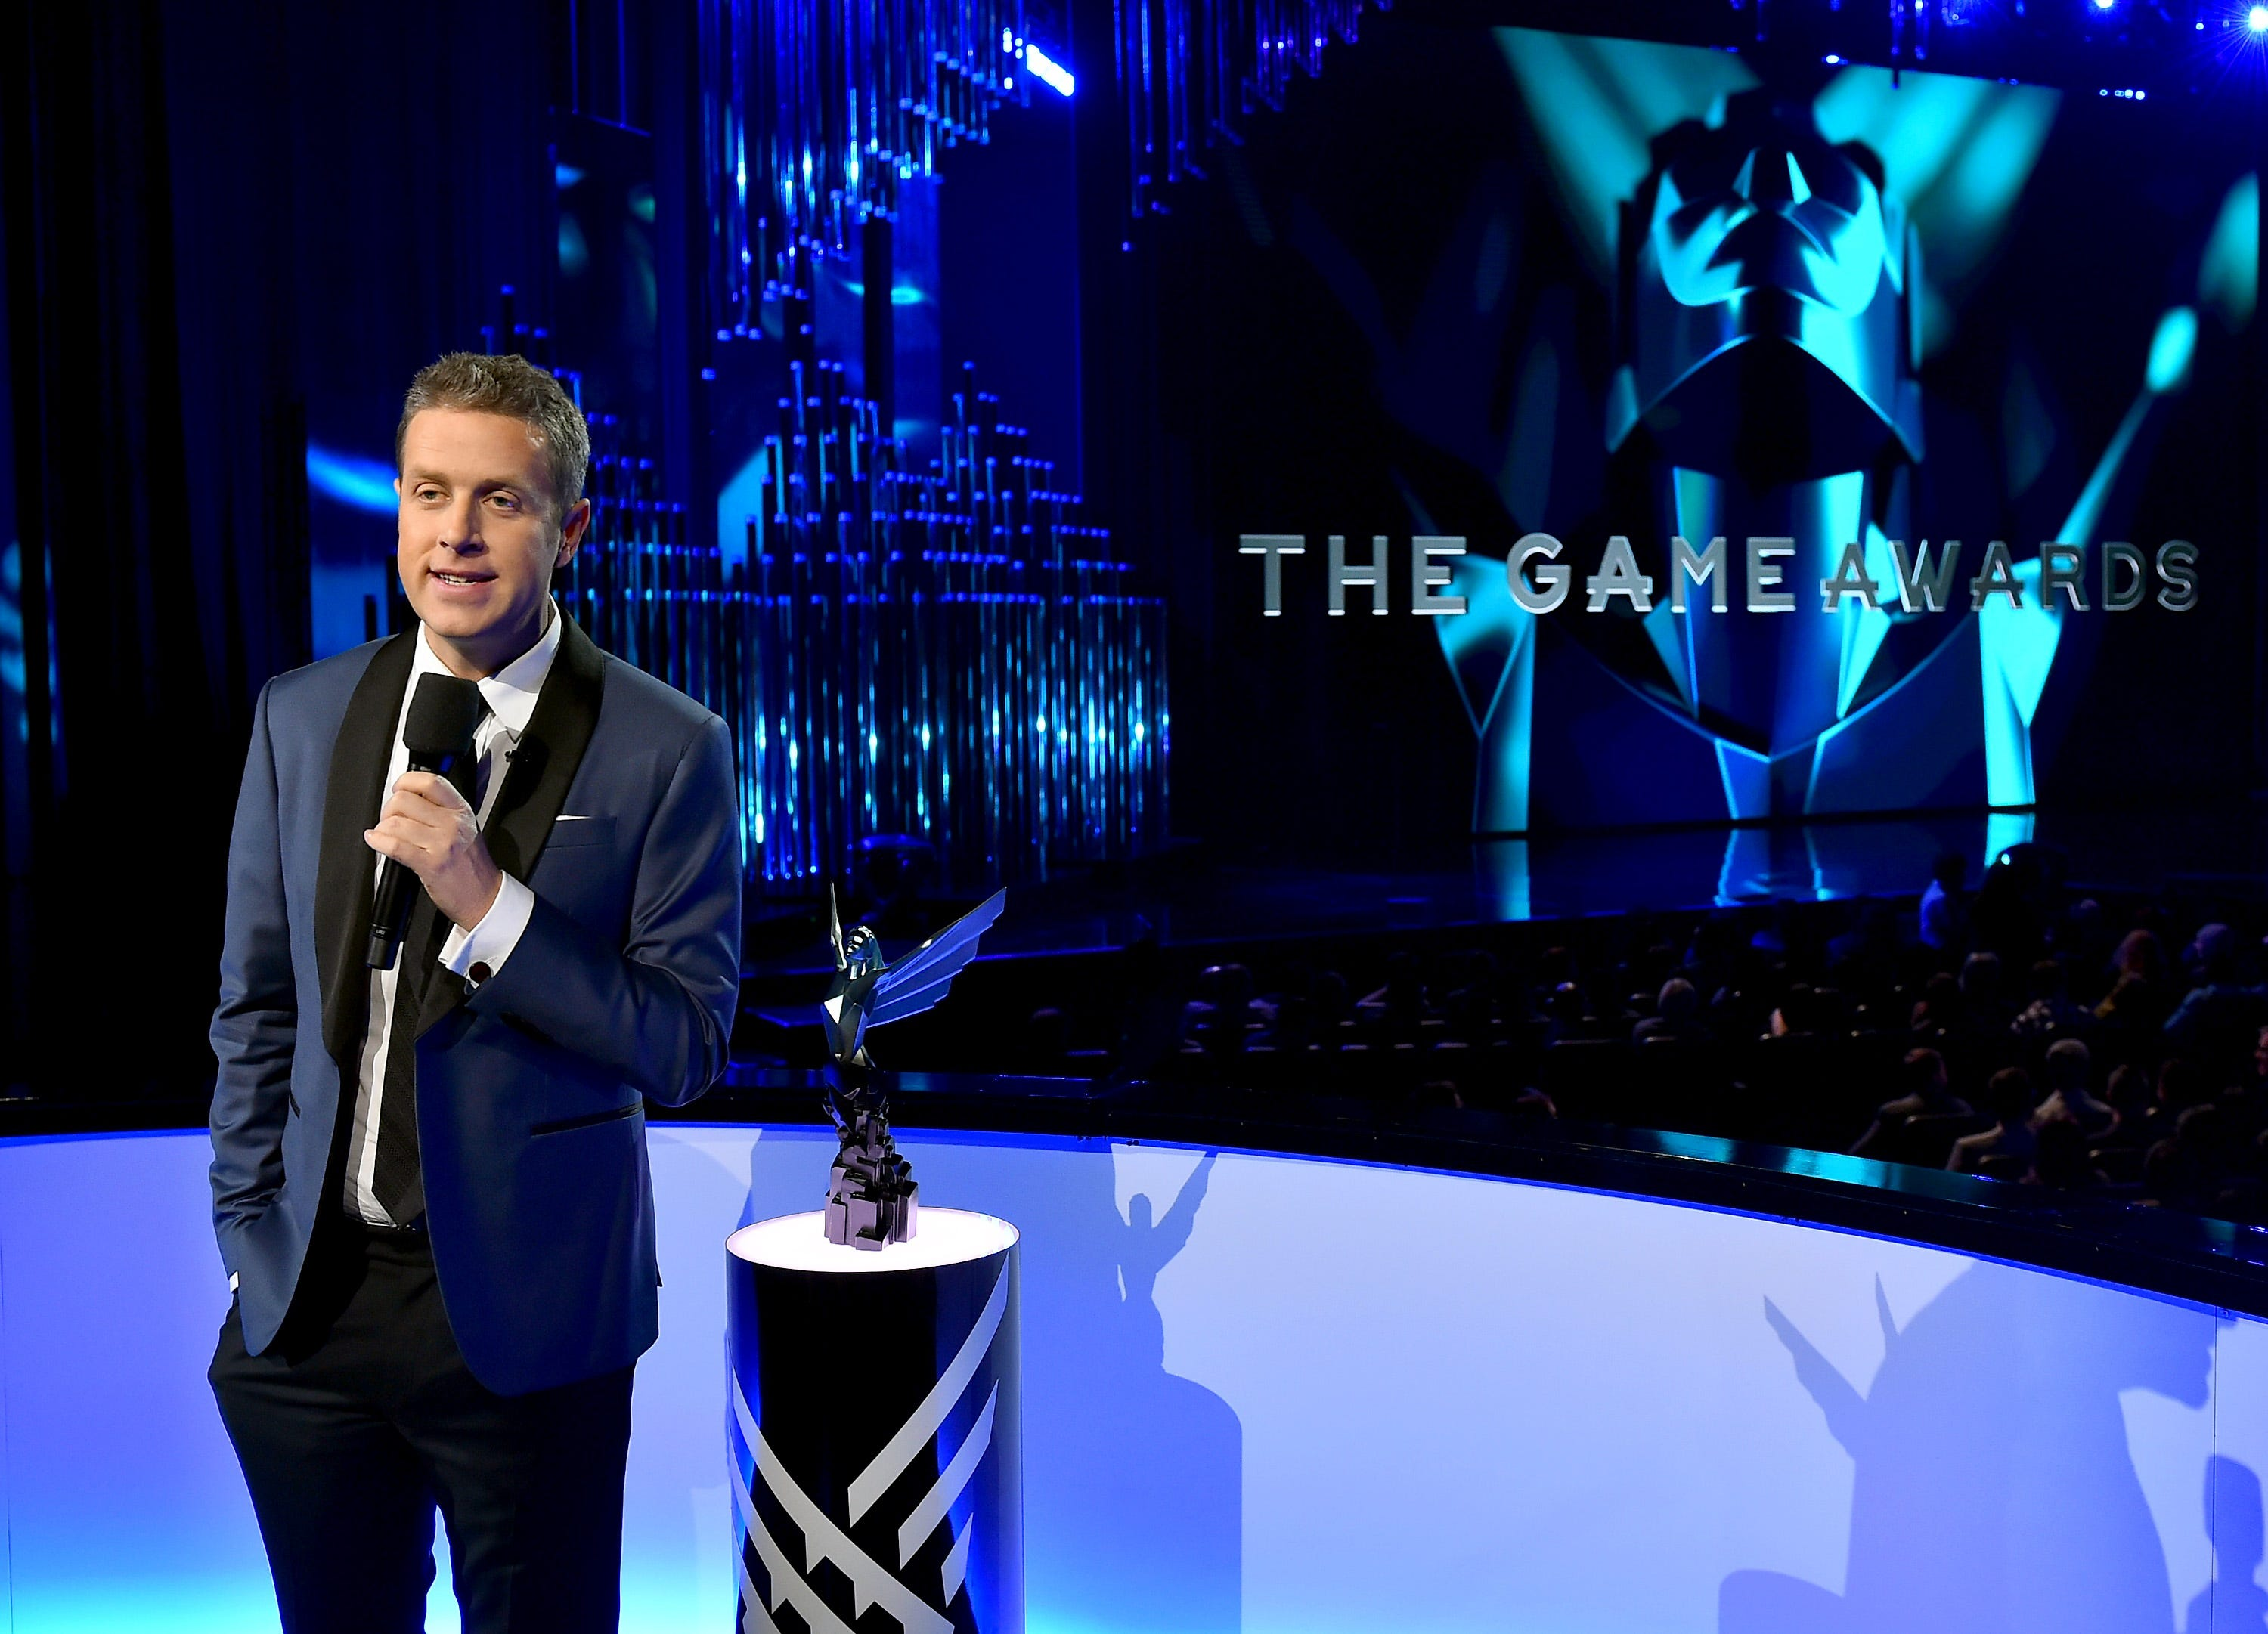 The Game Awards, the highlights, premieres and winners at the video game industry's big night